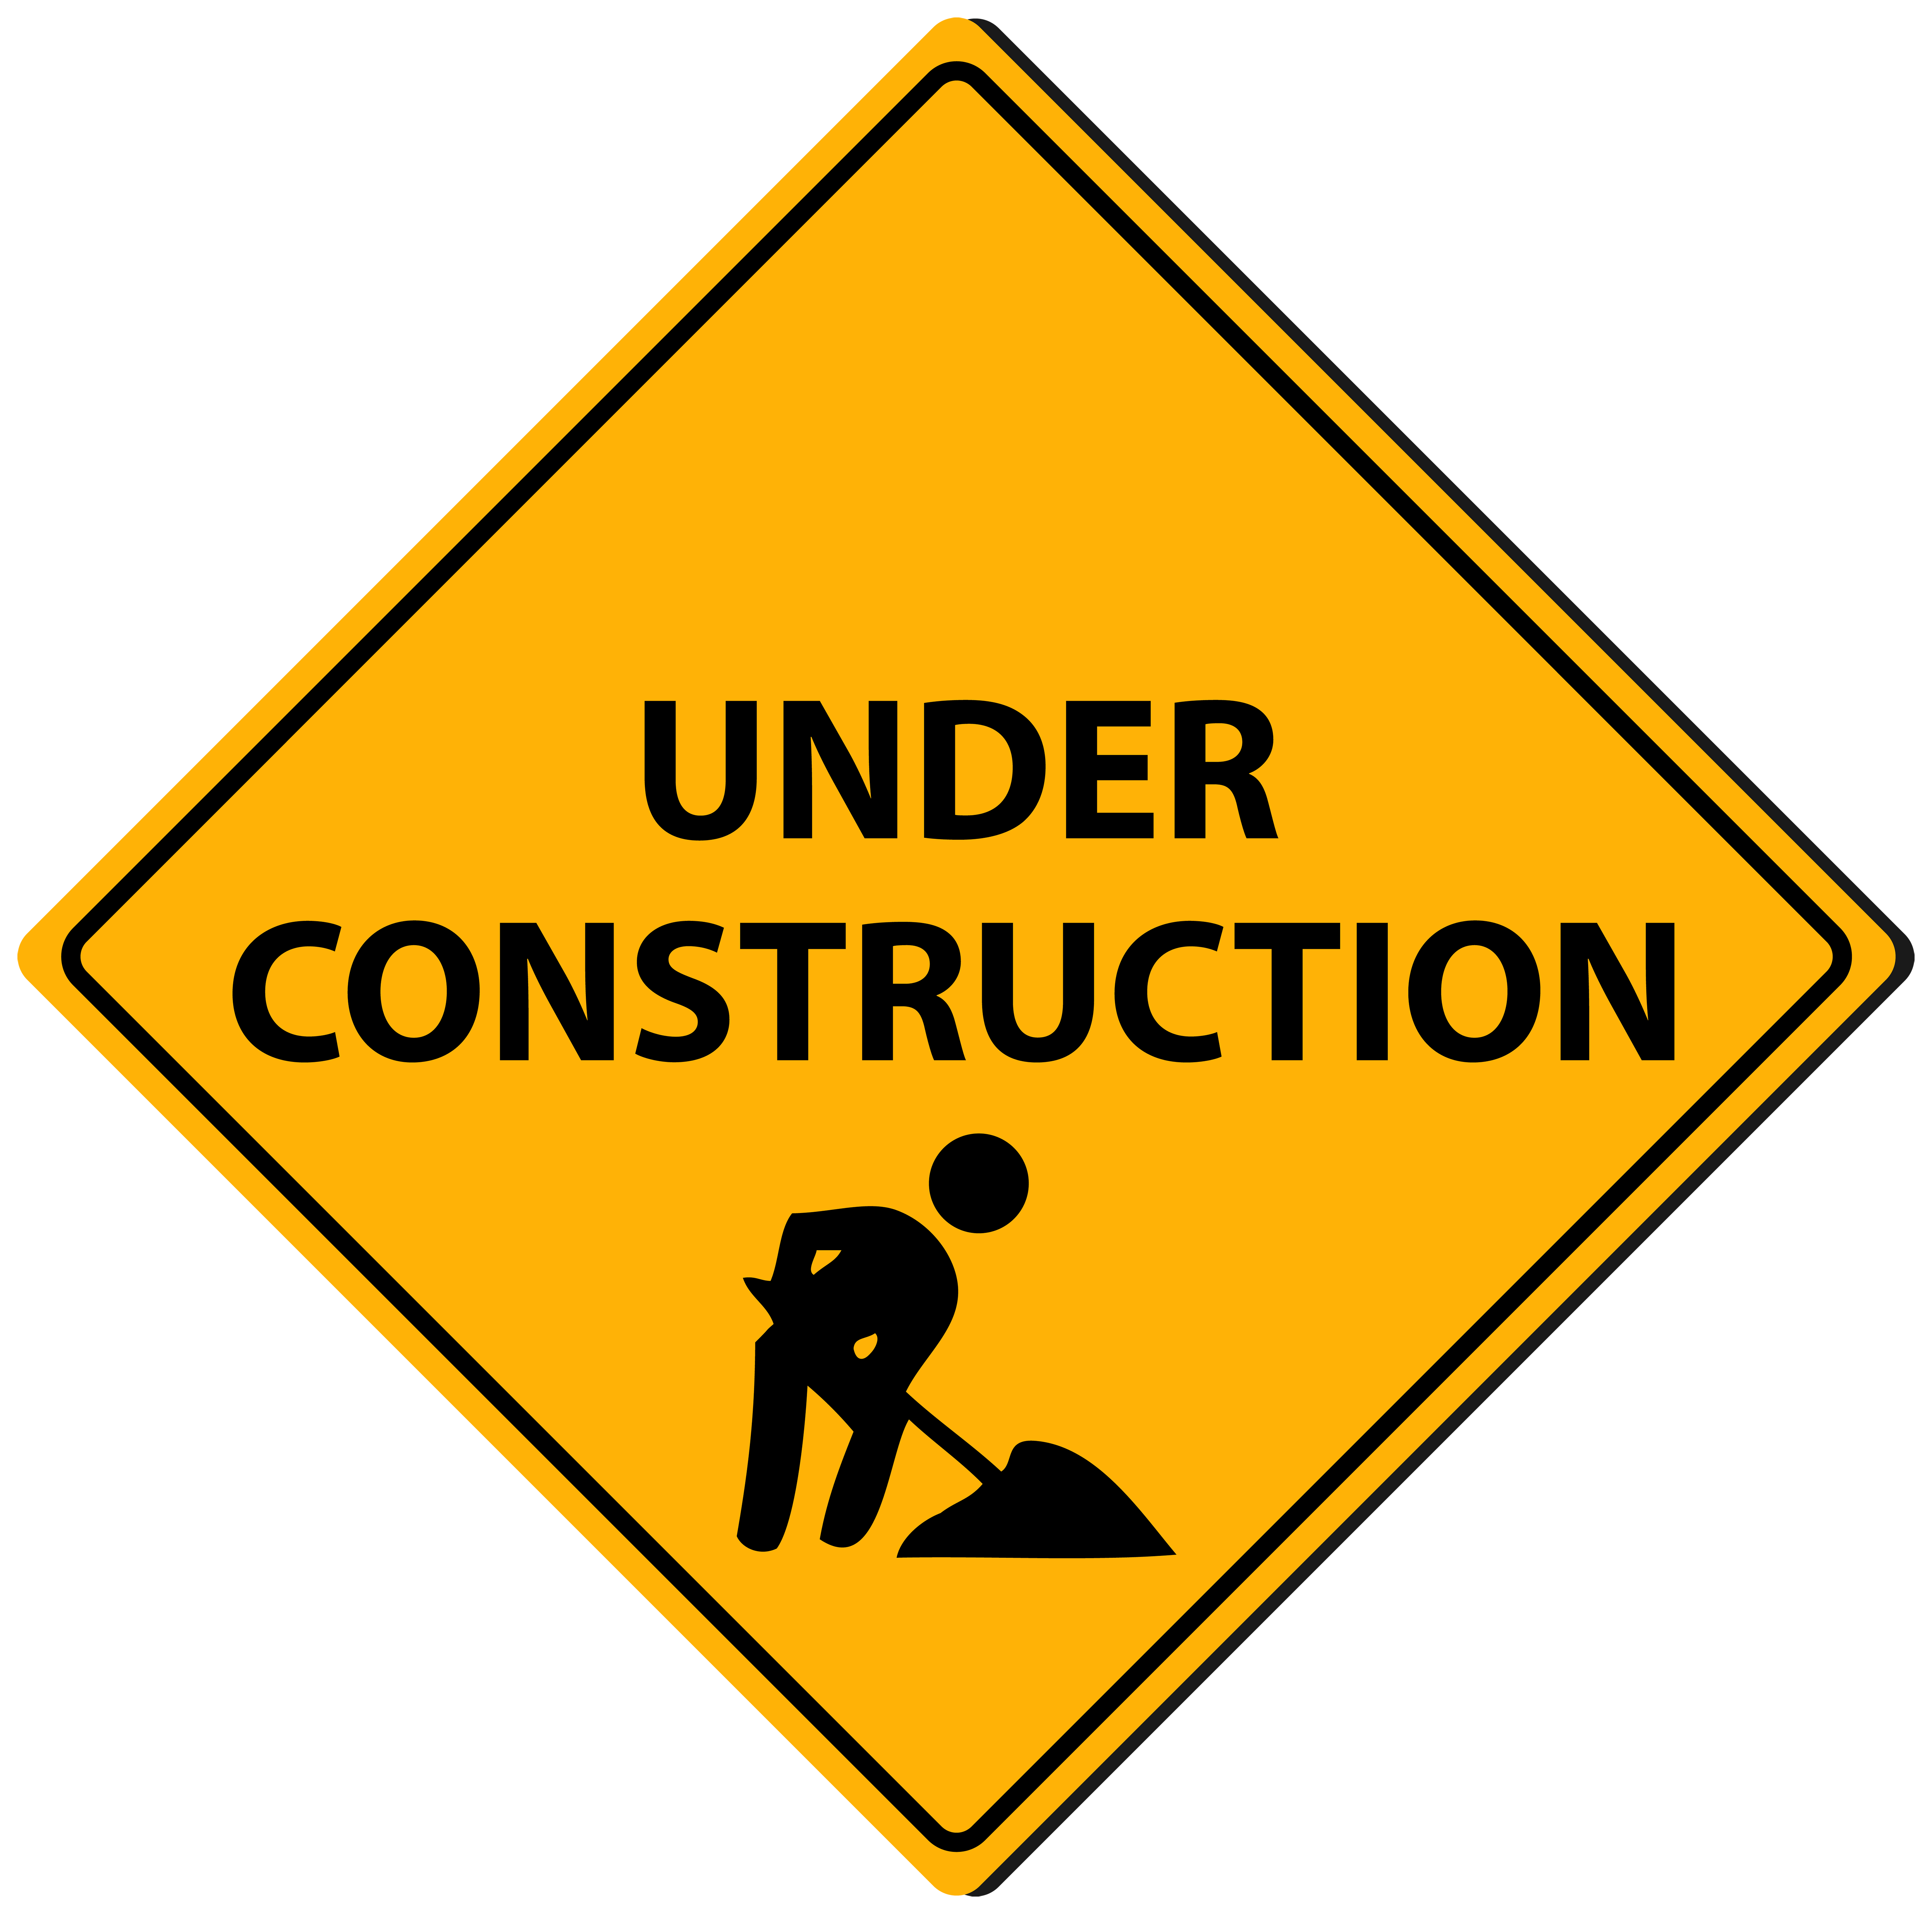 Triangle sign png best. Website clipart under construction